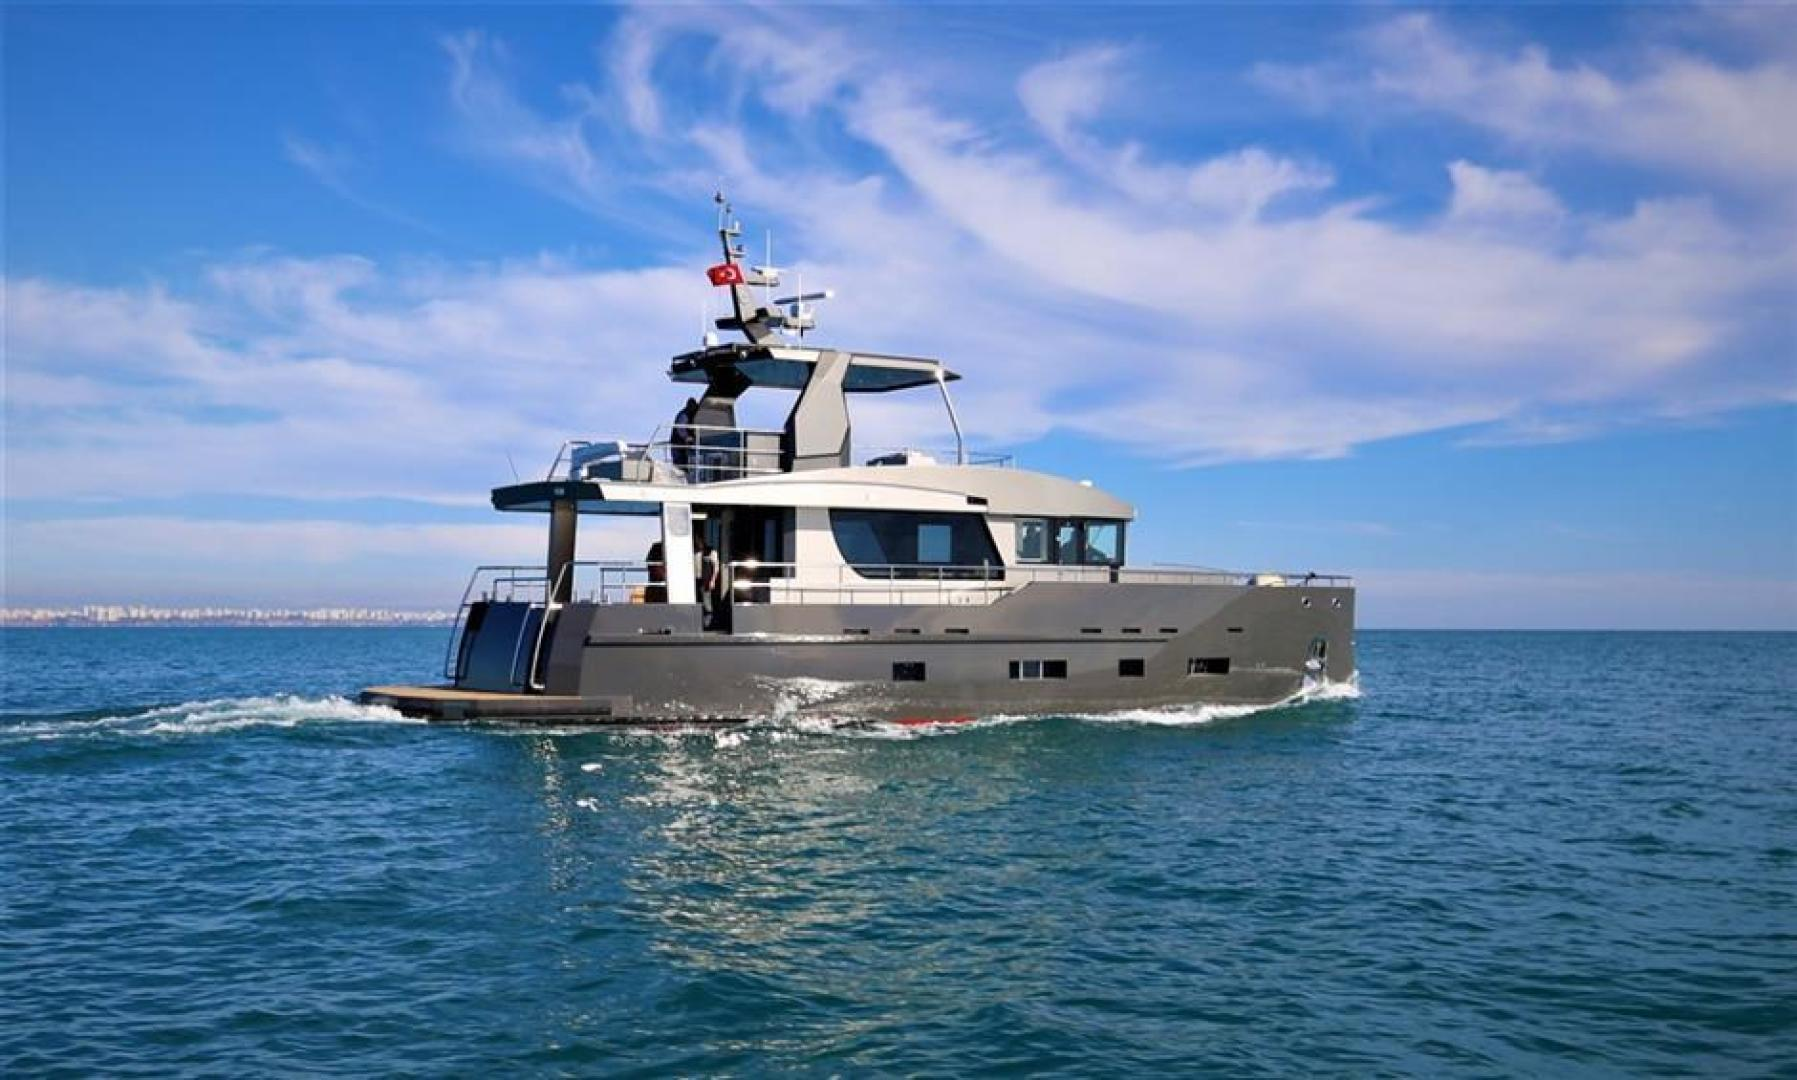 Bering-Expedition Yacht 2019-Expedition Yacht Turkey-1405156   Thumbnail